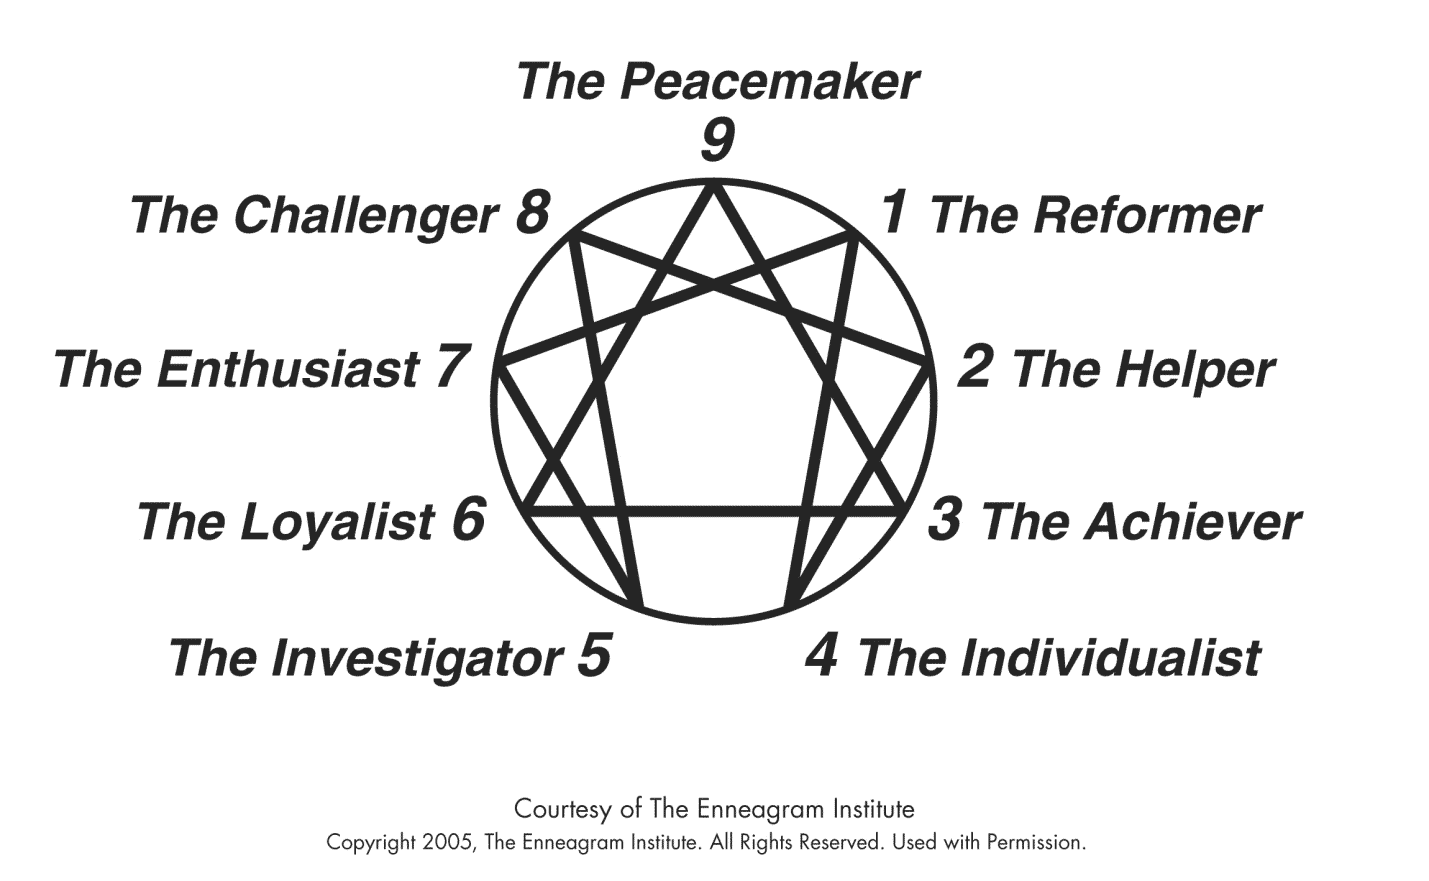 enneagram-symbol-with-labels